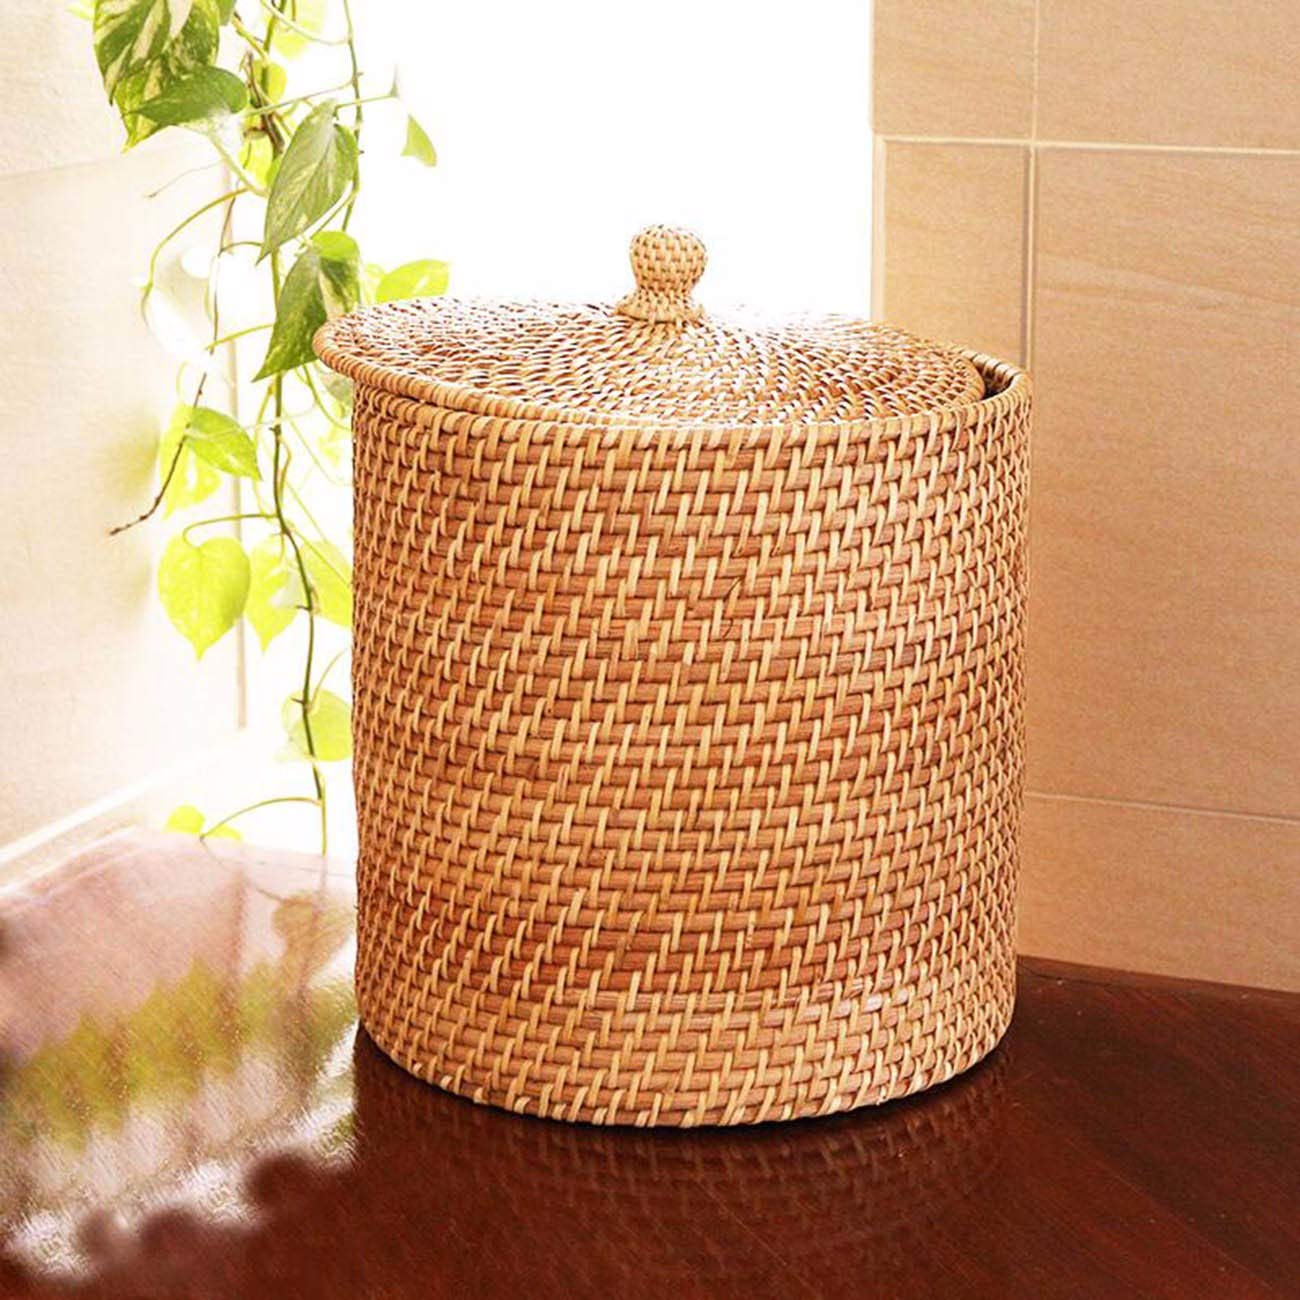 JFBZS-trash can Cane-Knitted Handmade Receiving Tank Refuse bin Home Receiving Tank with Cover Receiving Tank for Snacks and Groceries Receiving Tank Refuse bin A